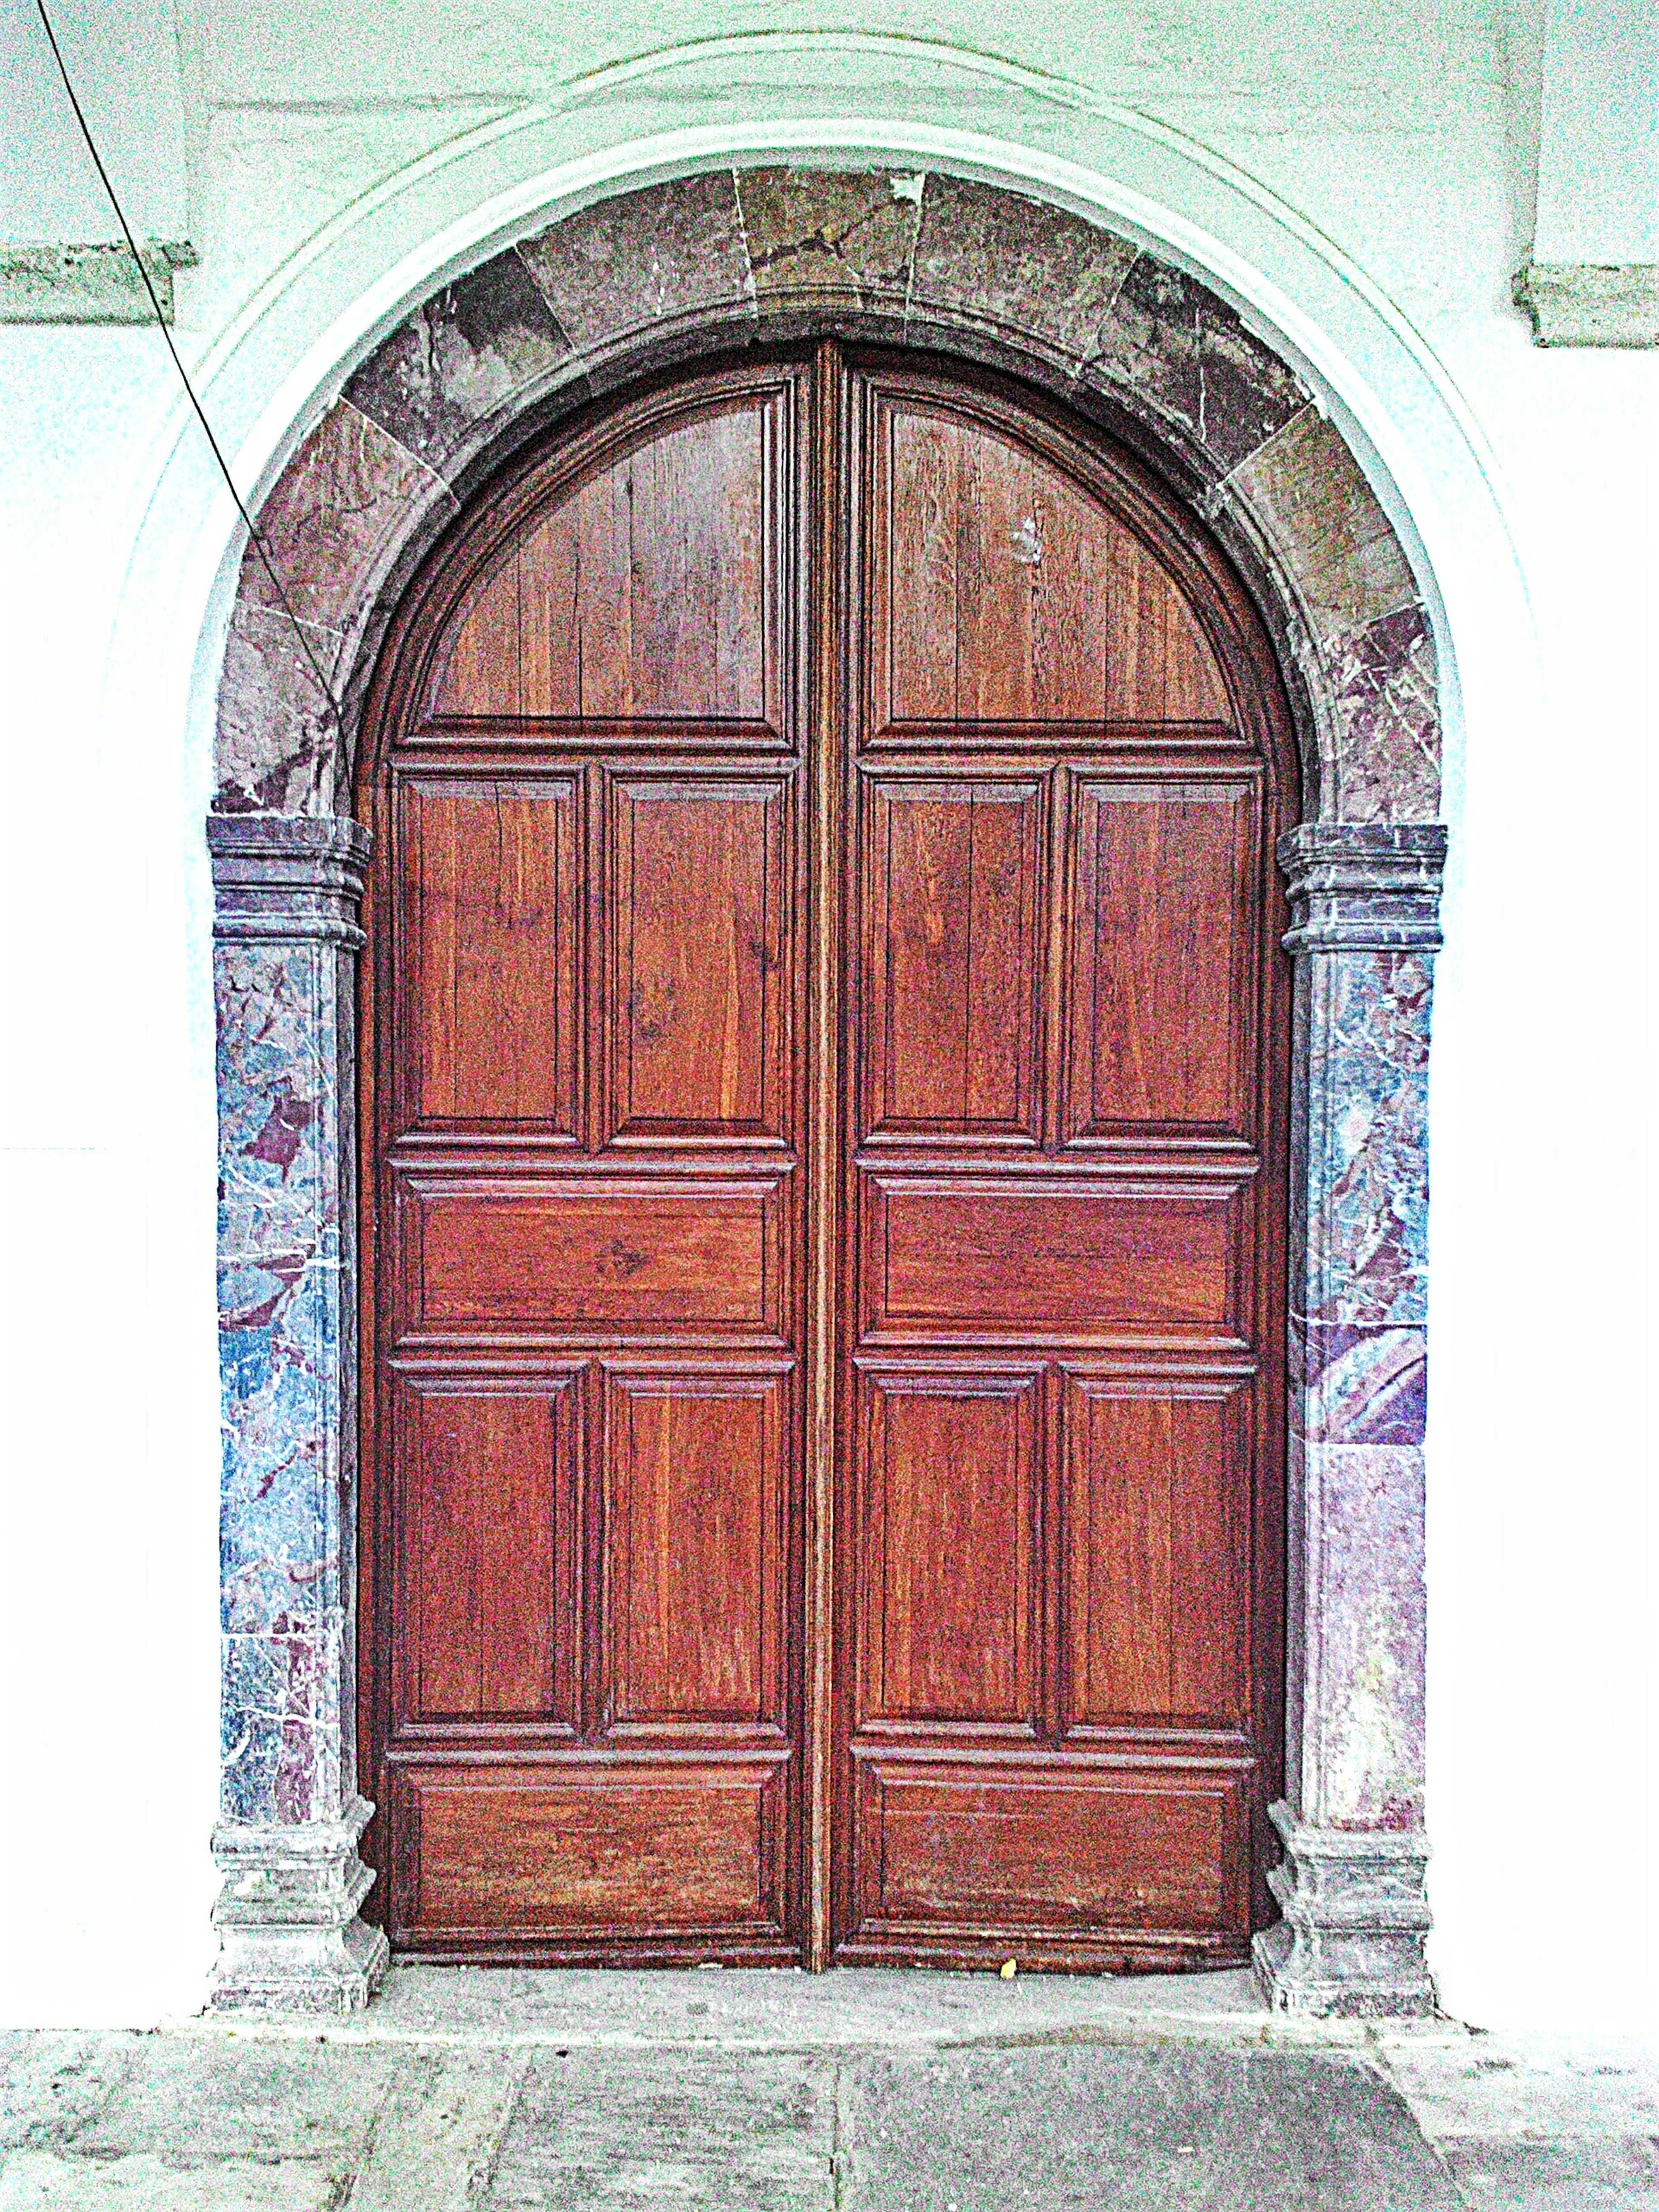 🚪🚪🚪 Traveling Colors Doors Wood Old Buildings Geometric Shapes Walking Around